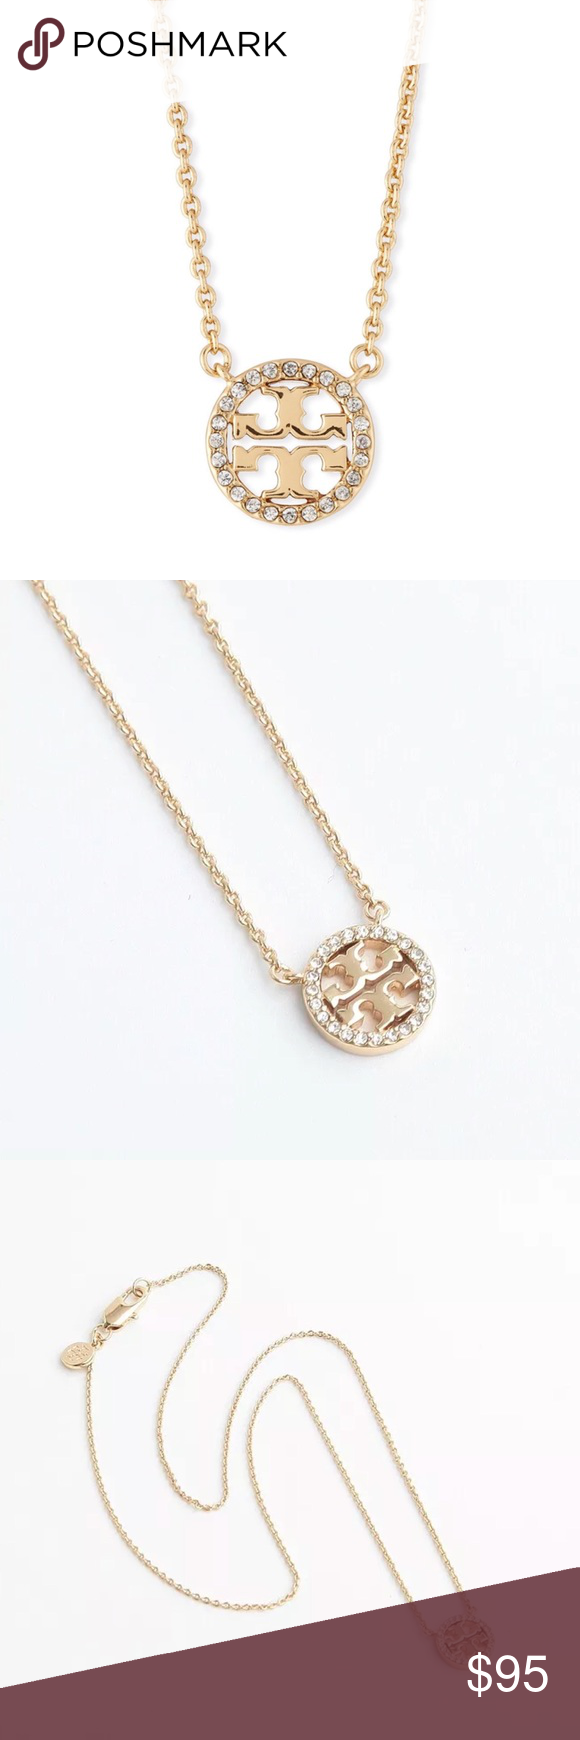 TORY BURCH CRYSTAL CIRCLE LOGO NECKLACE Silver